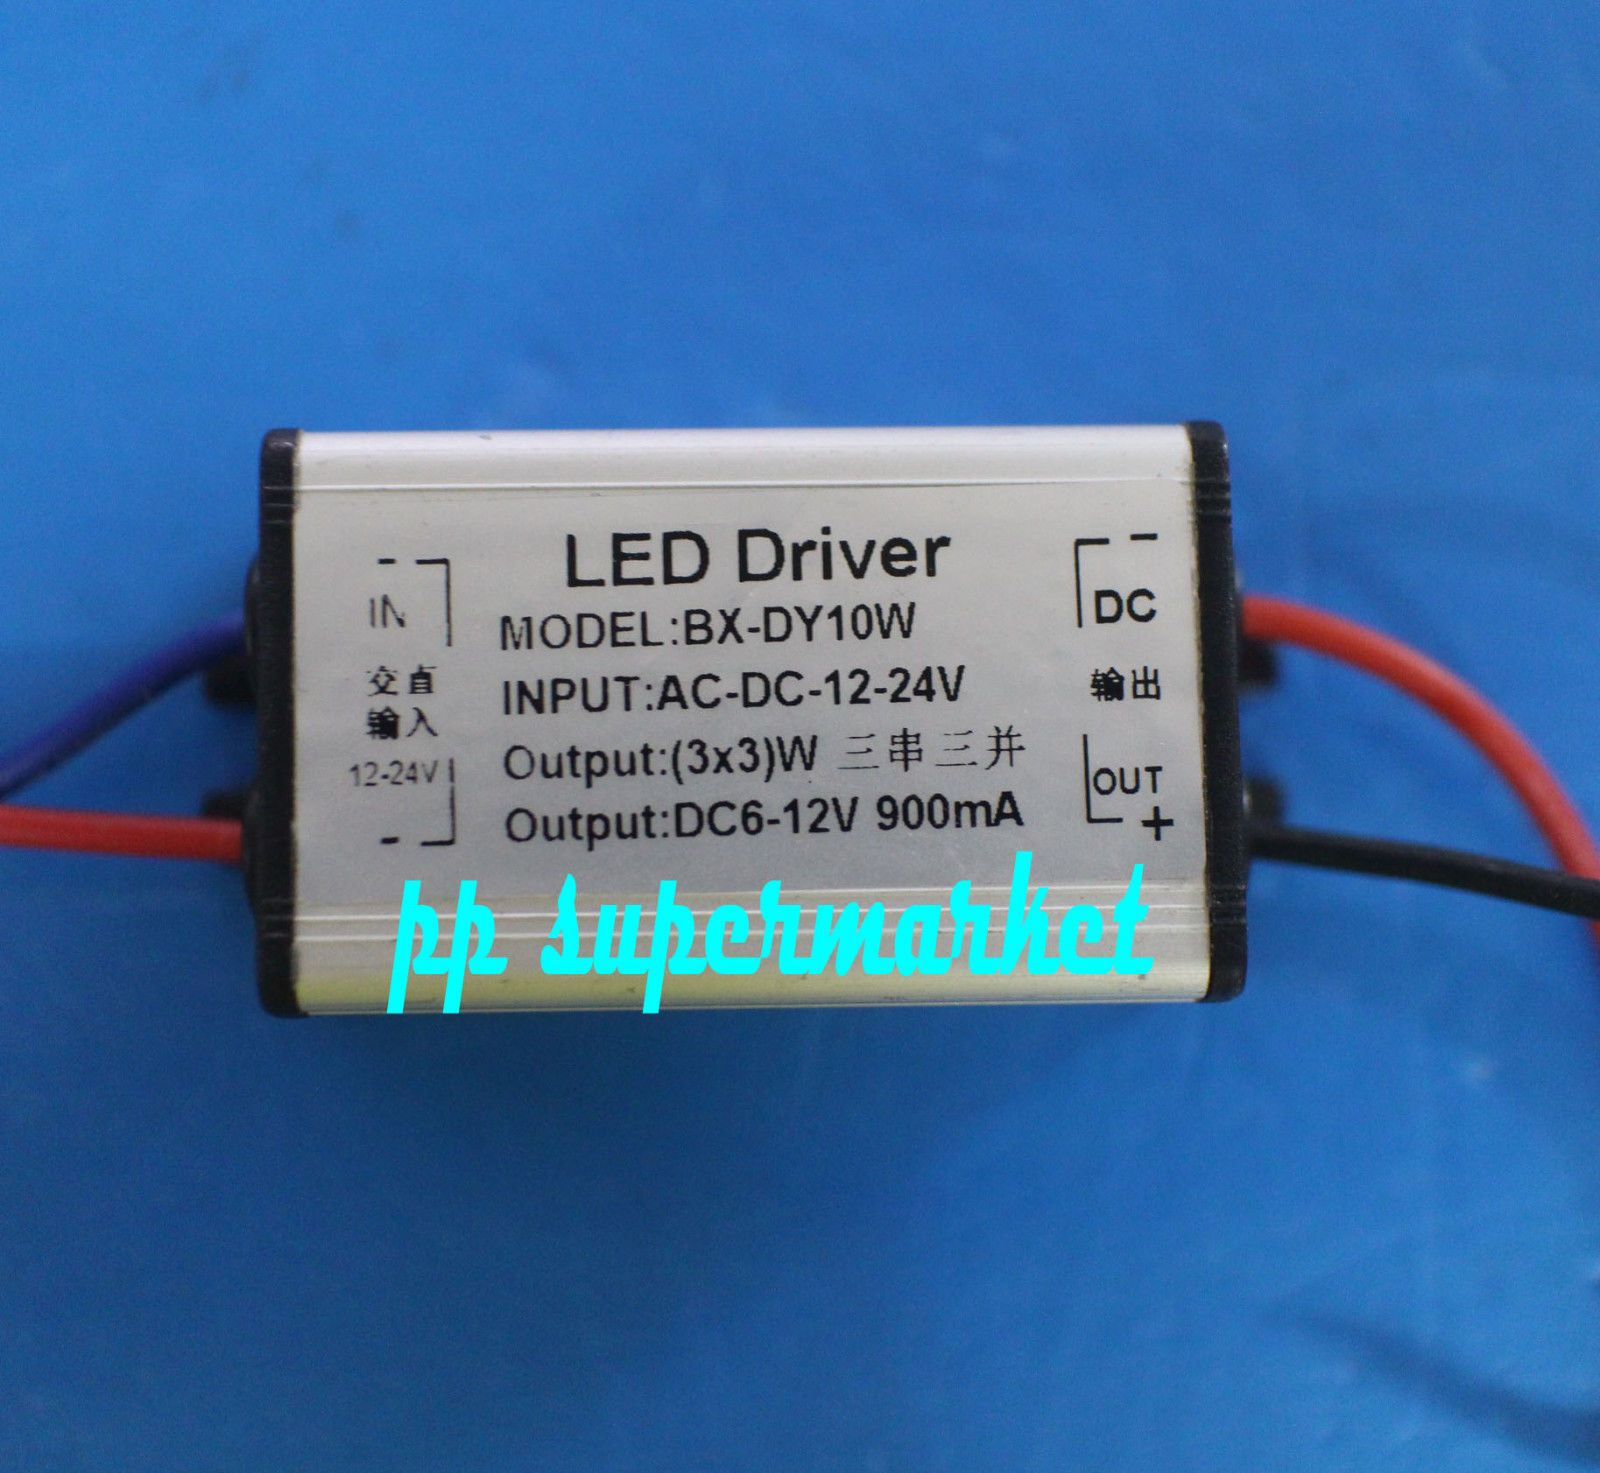 399 Ac Dc 12v 24v 10w High Power Led Driver For 3x3w Picture Of Circuits